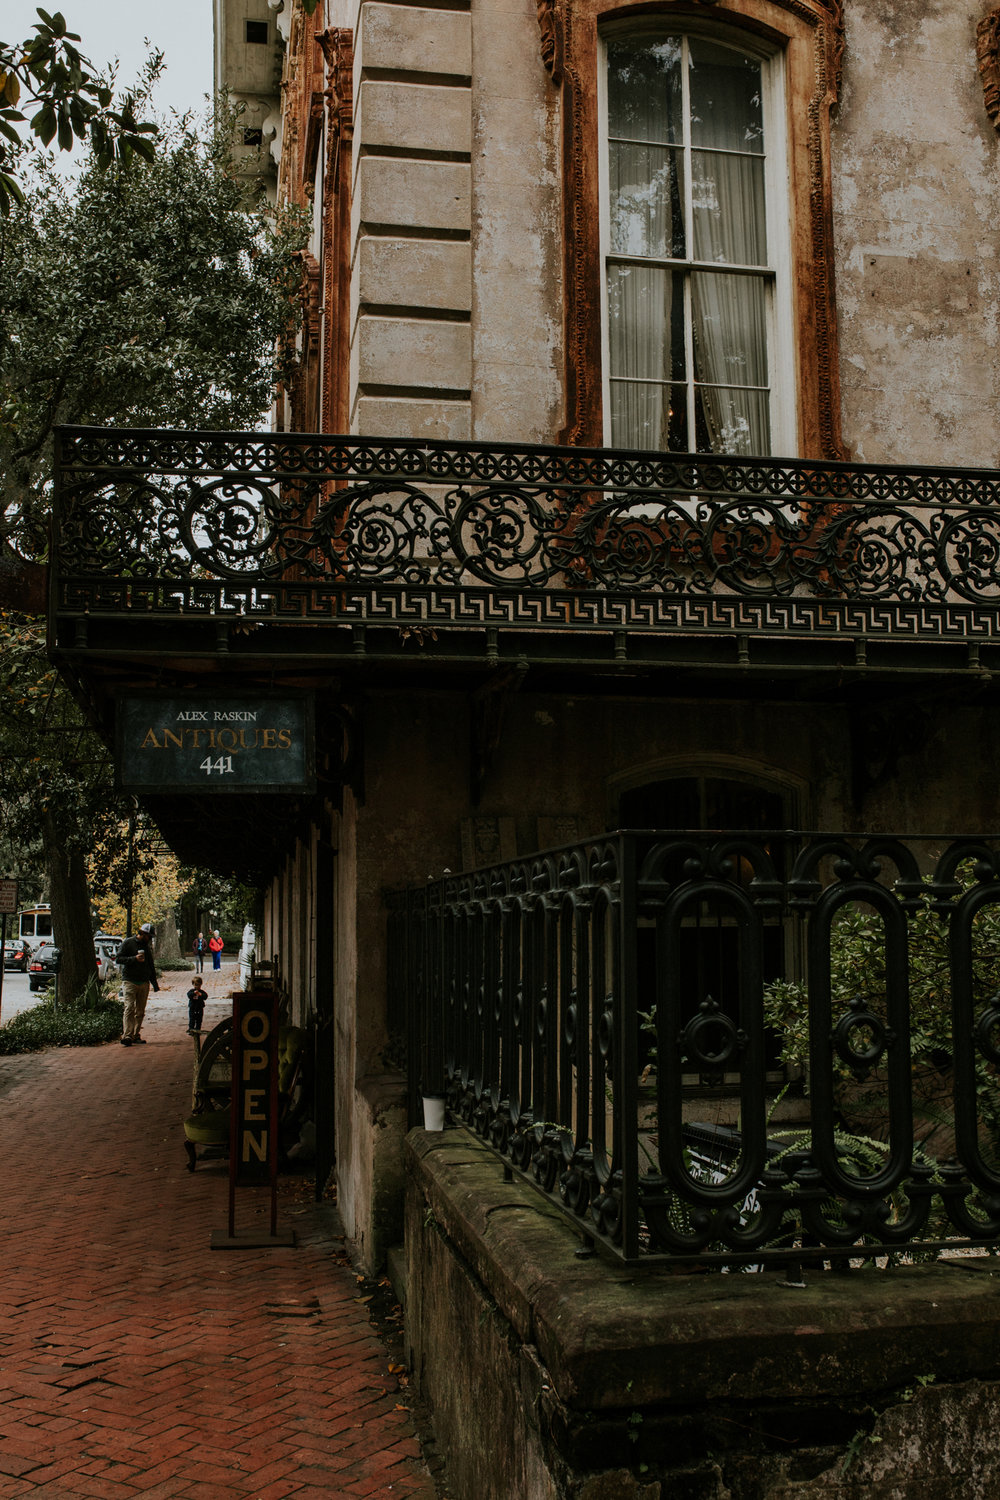 Alex Raskin Antiques - Savannah Georgia Travel - Destination Elopement Photographer - Vow of the Wild